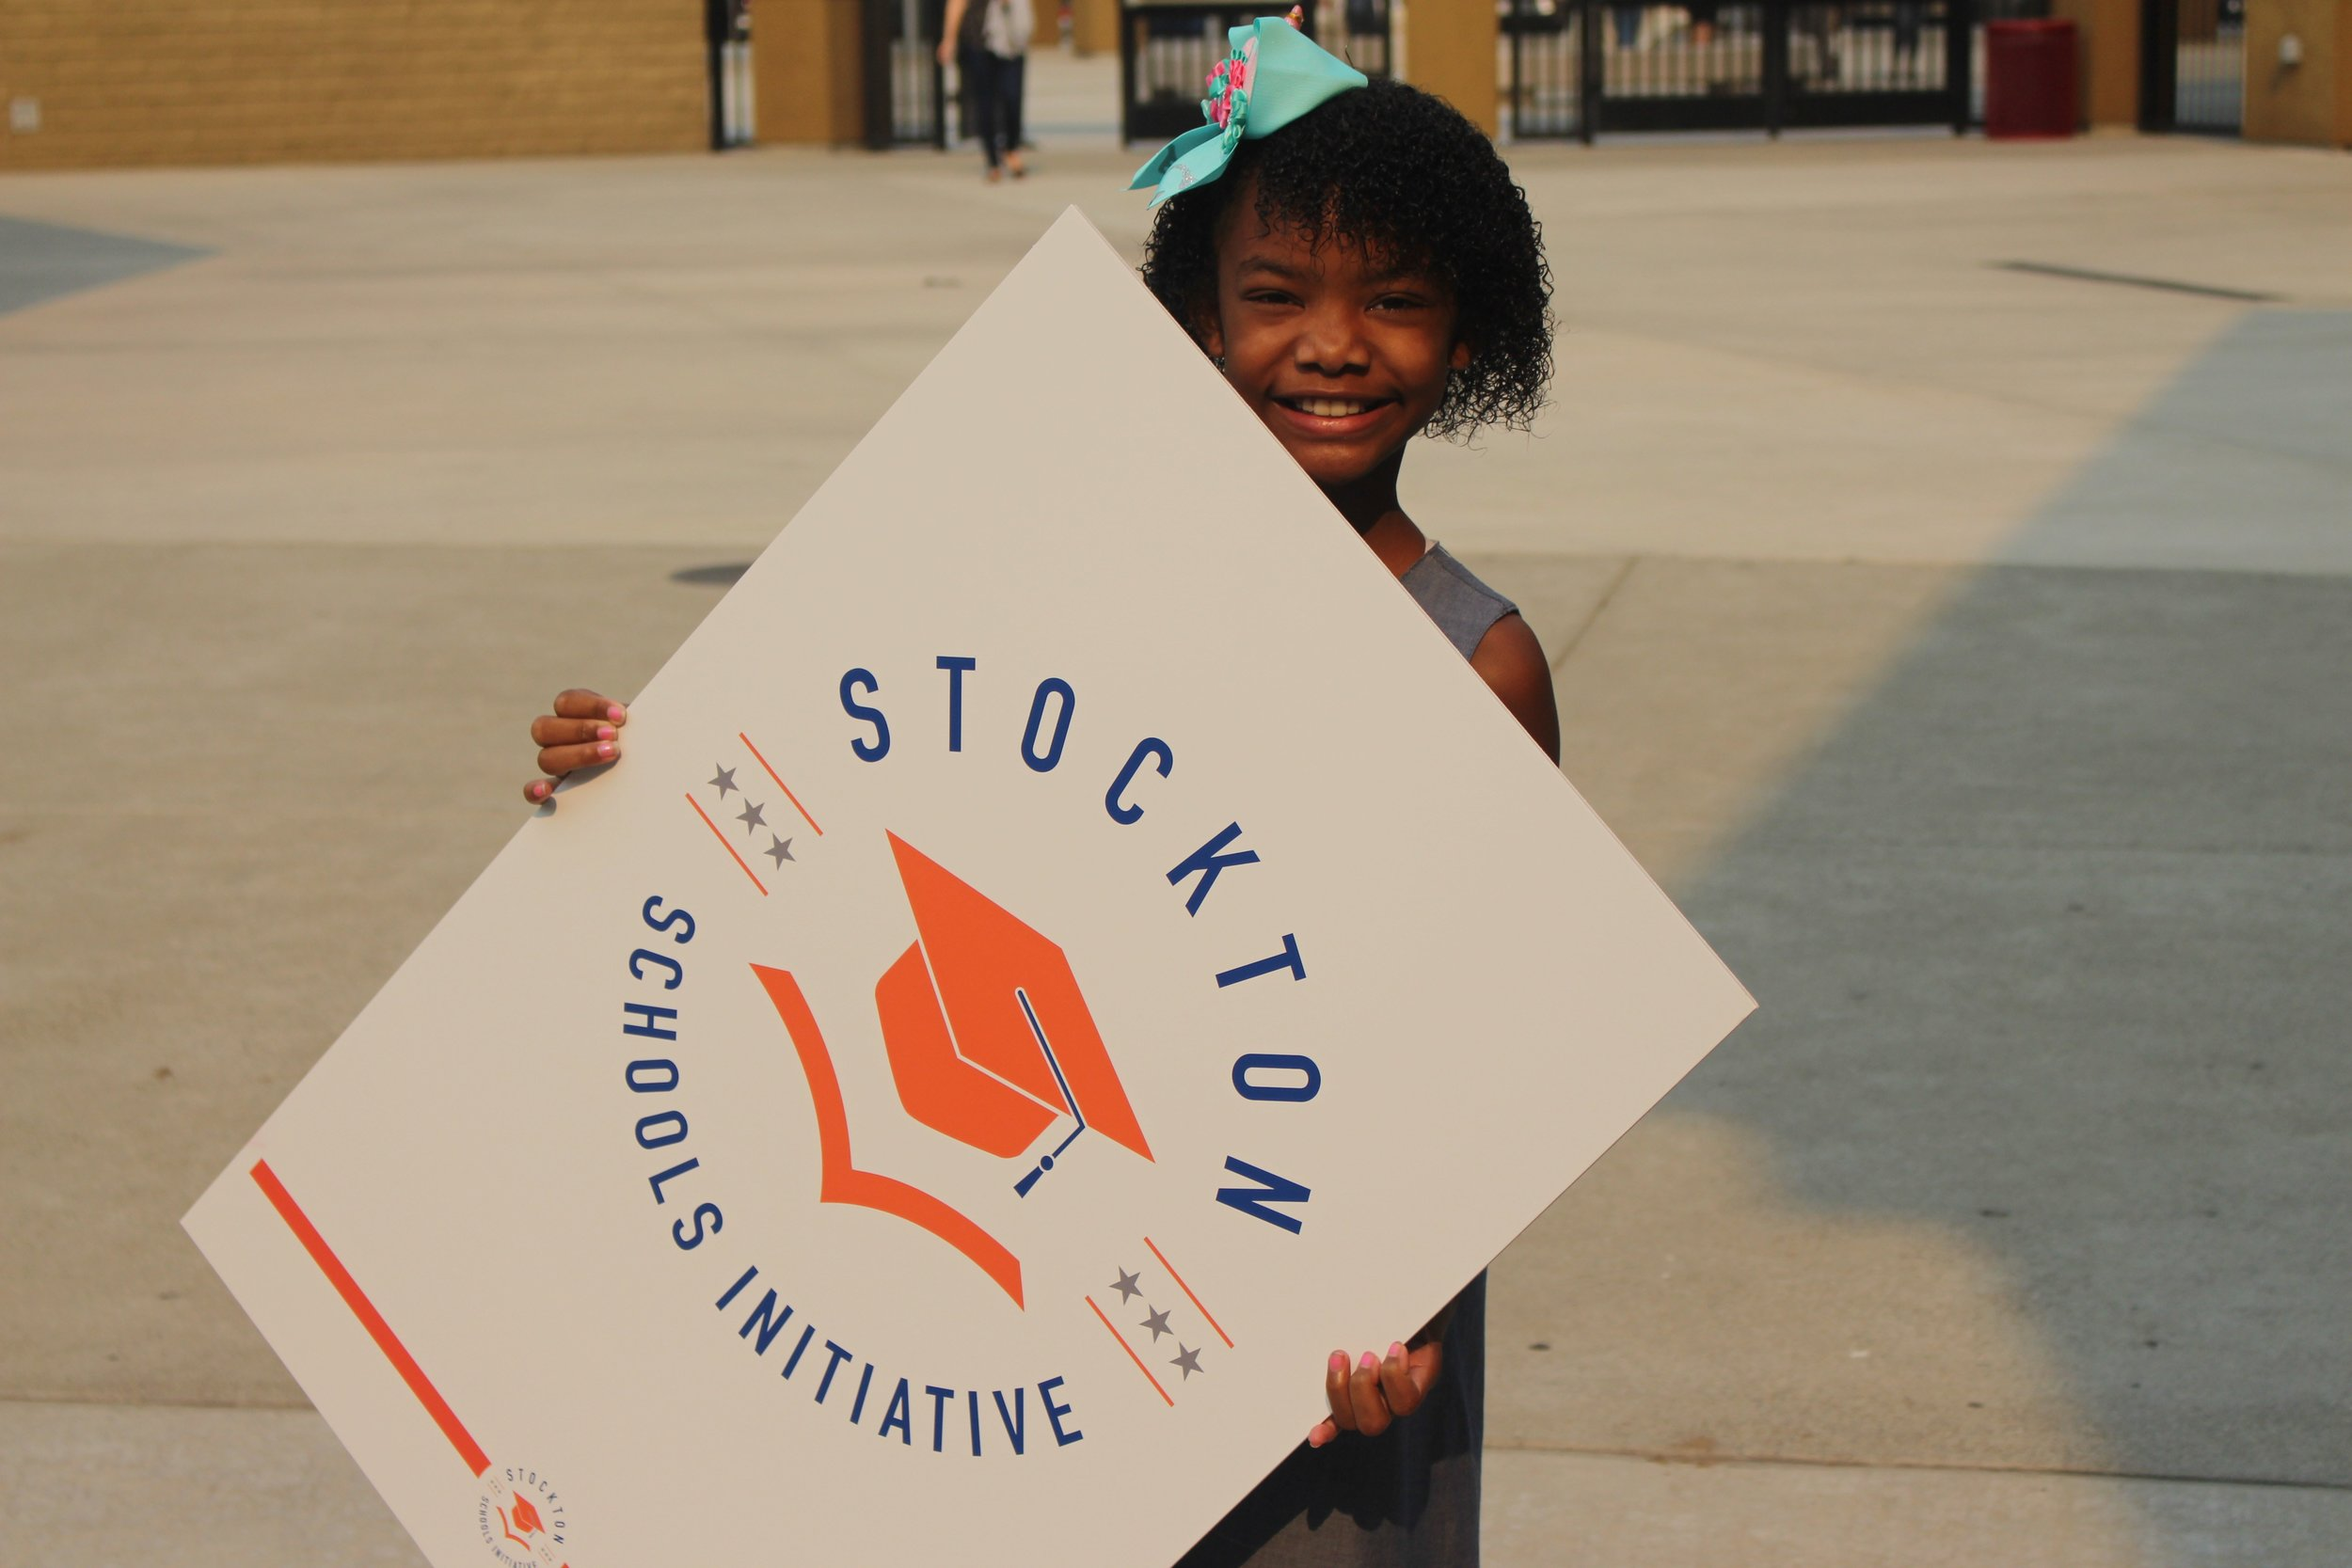 child with Stkn Sch Initiative logo.jpg